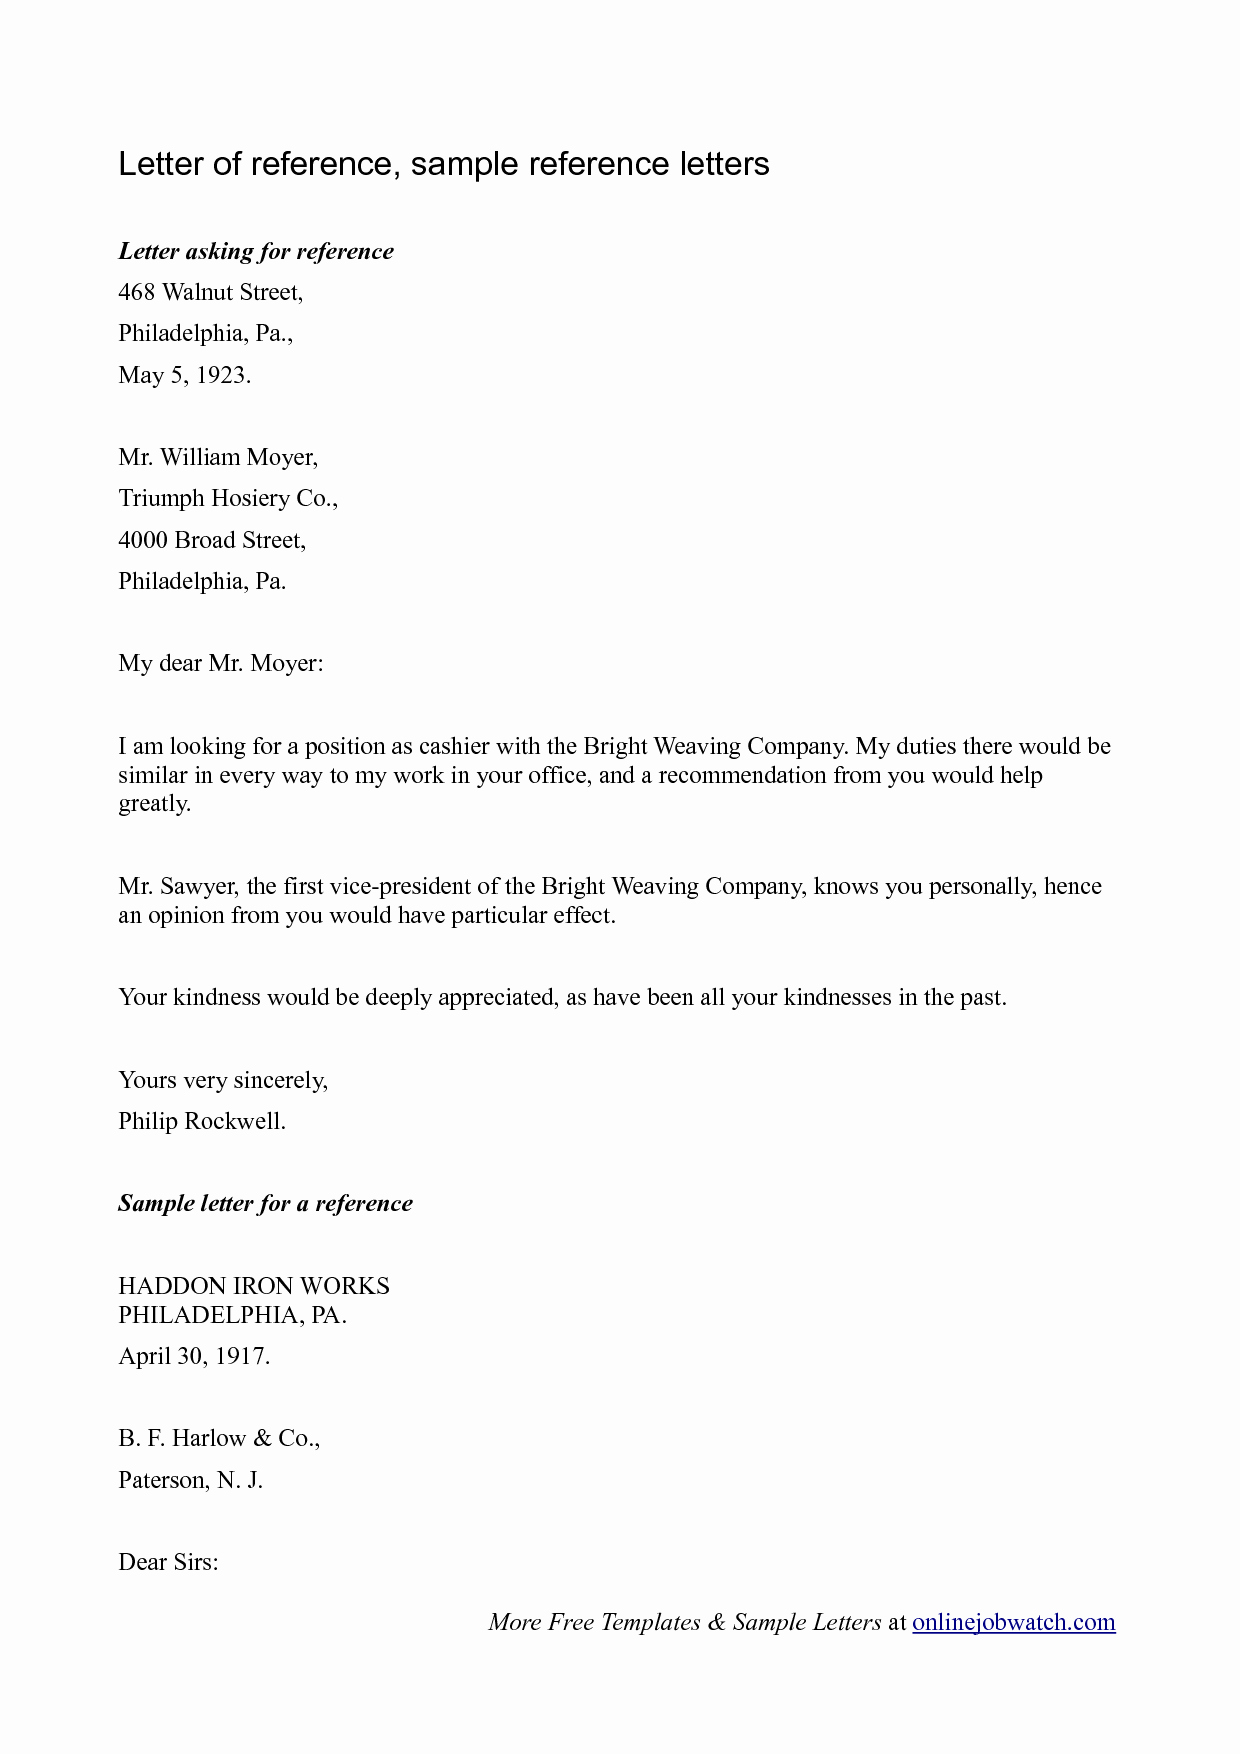 Letter Of Recommendation with Letterhead Fresh Letters Reference